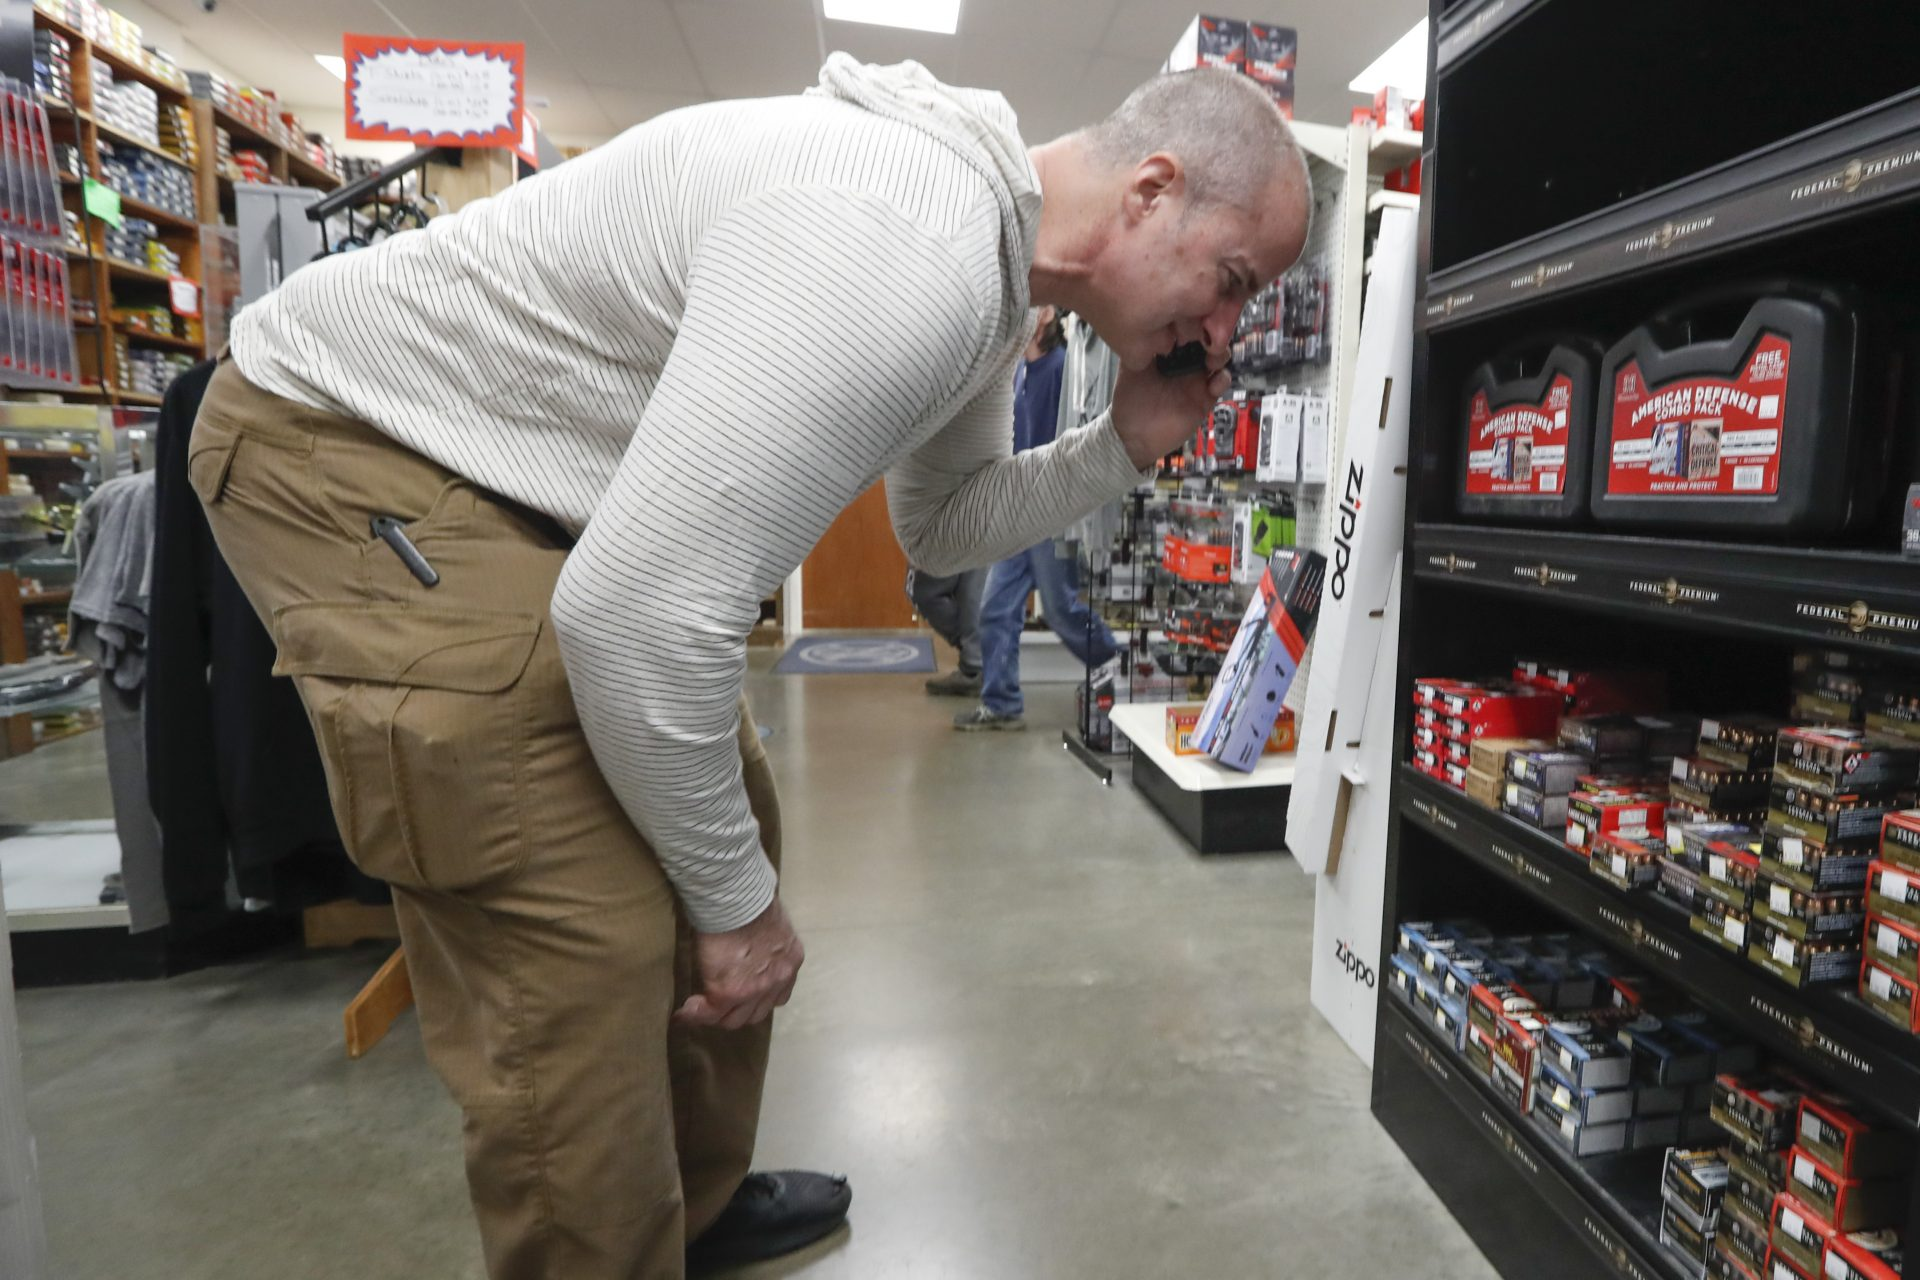 Wes Morosky looks for specific ammunition for a customer on the phone at Duke's Sport Shop, Wednesday, March 25, 2020, in New Castle, Pa.